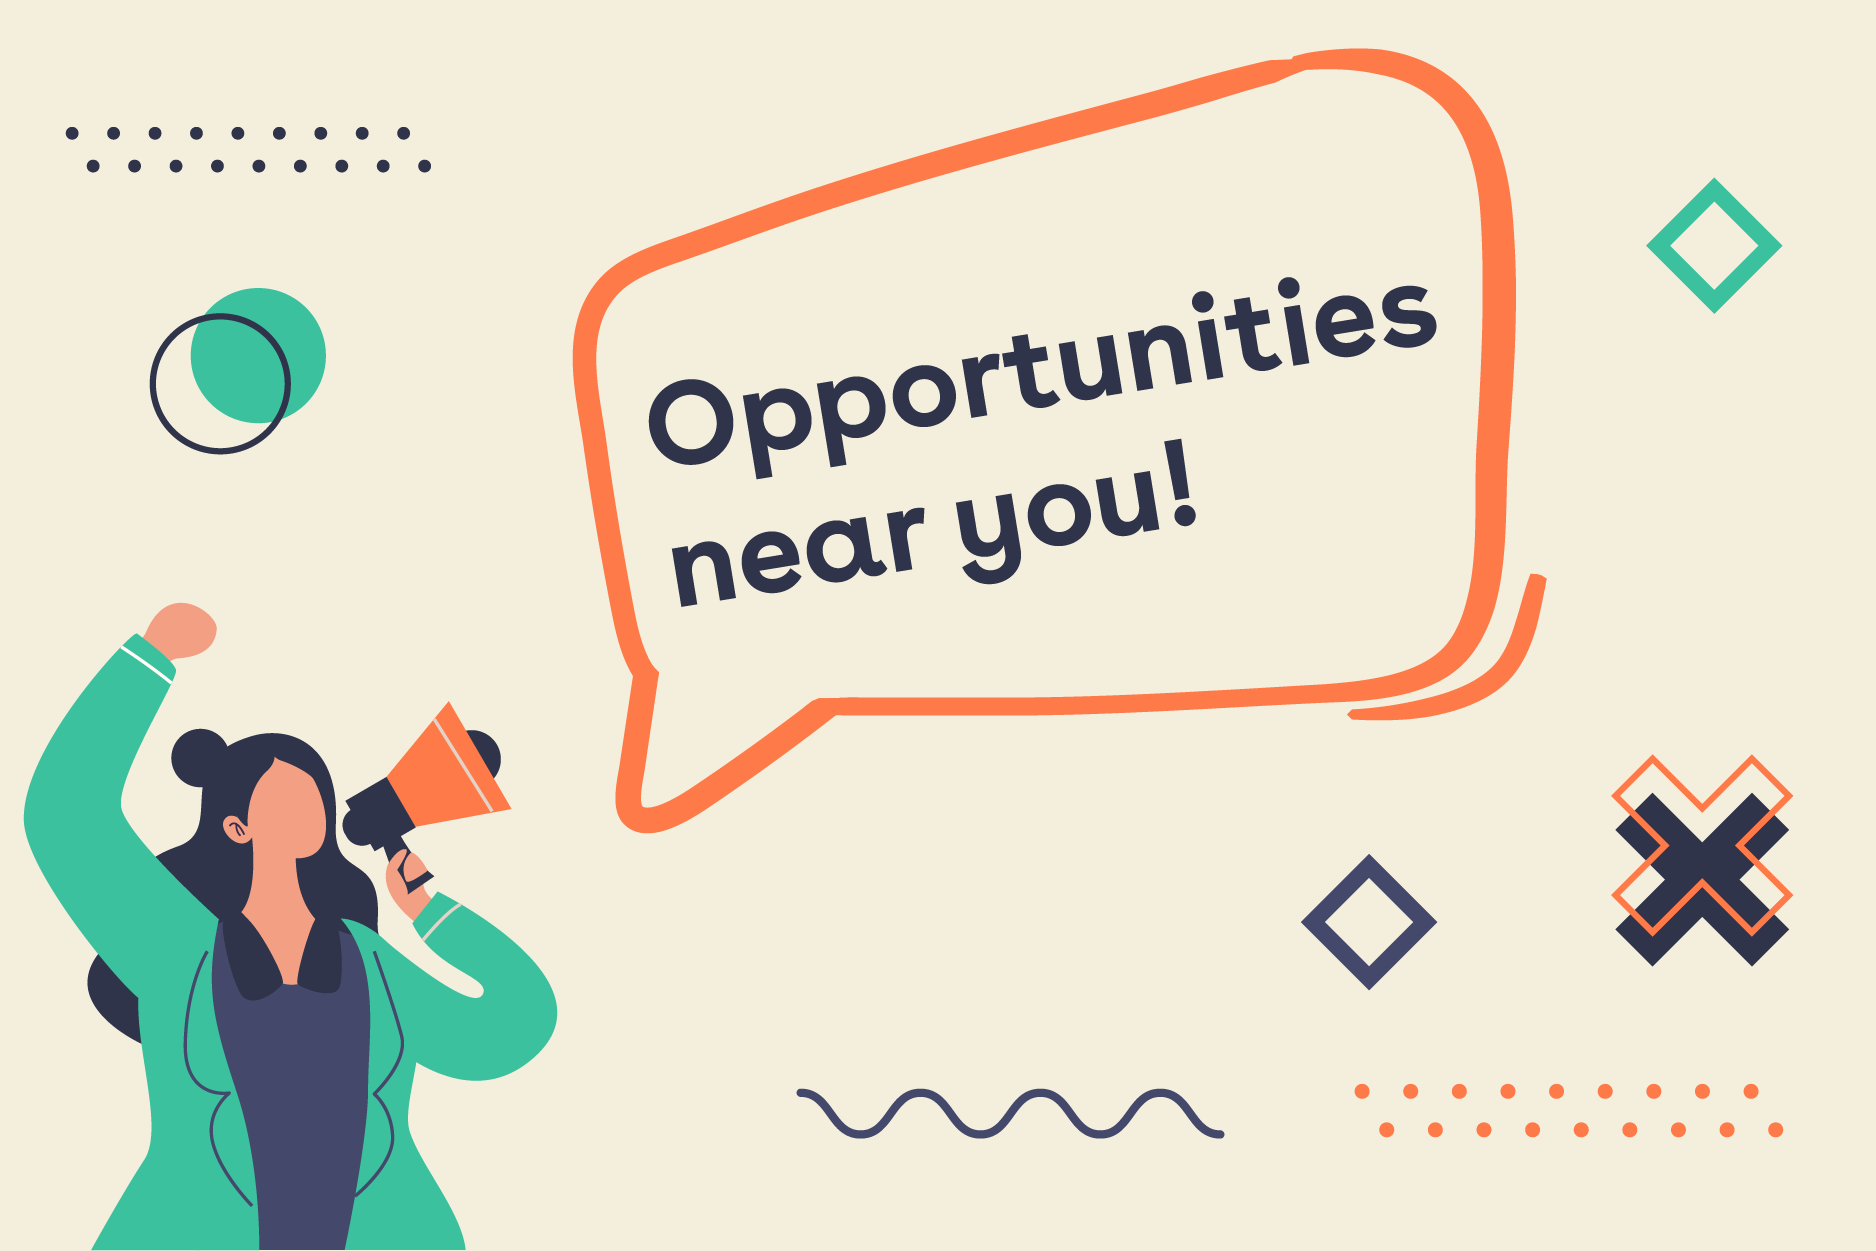 How can you do good by finding volunteer opportunities near you?